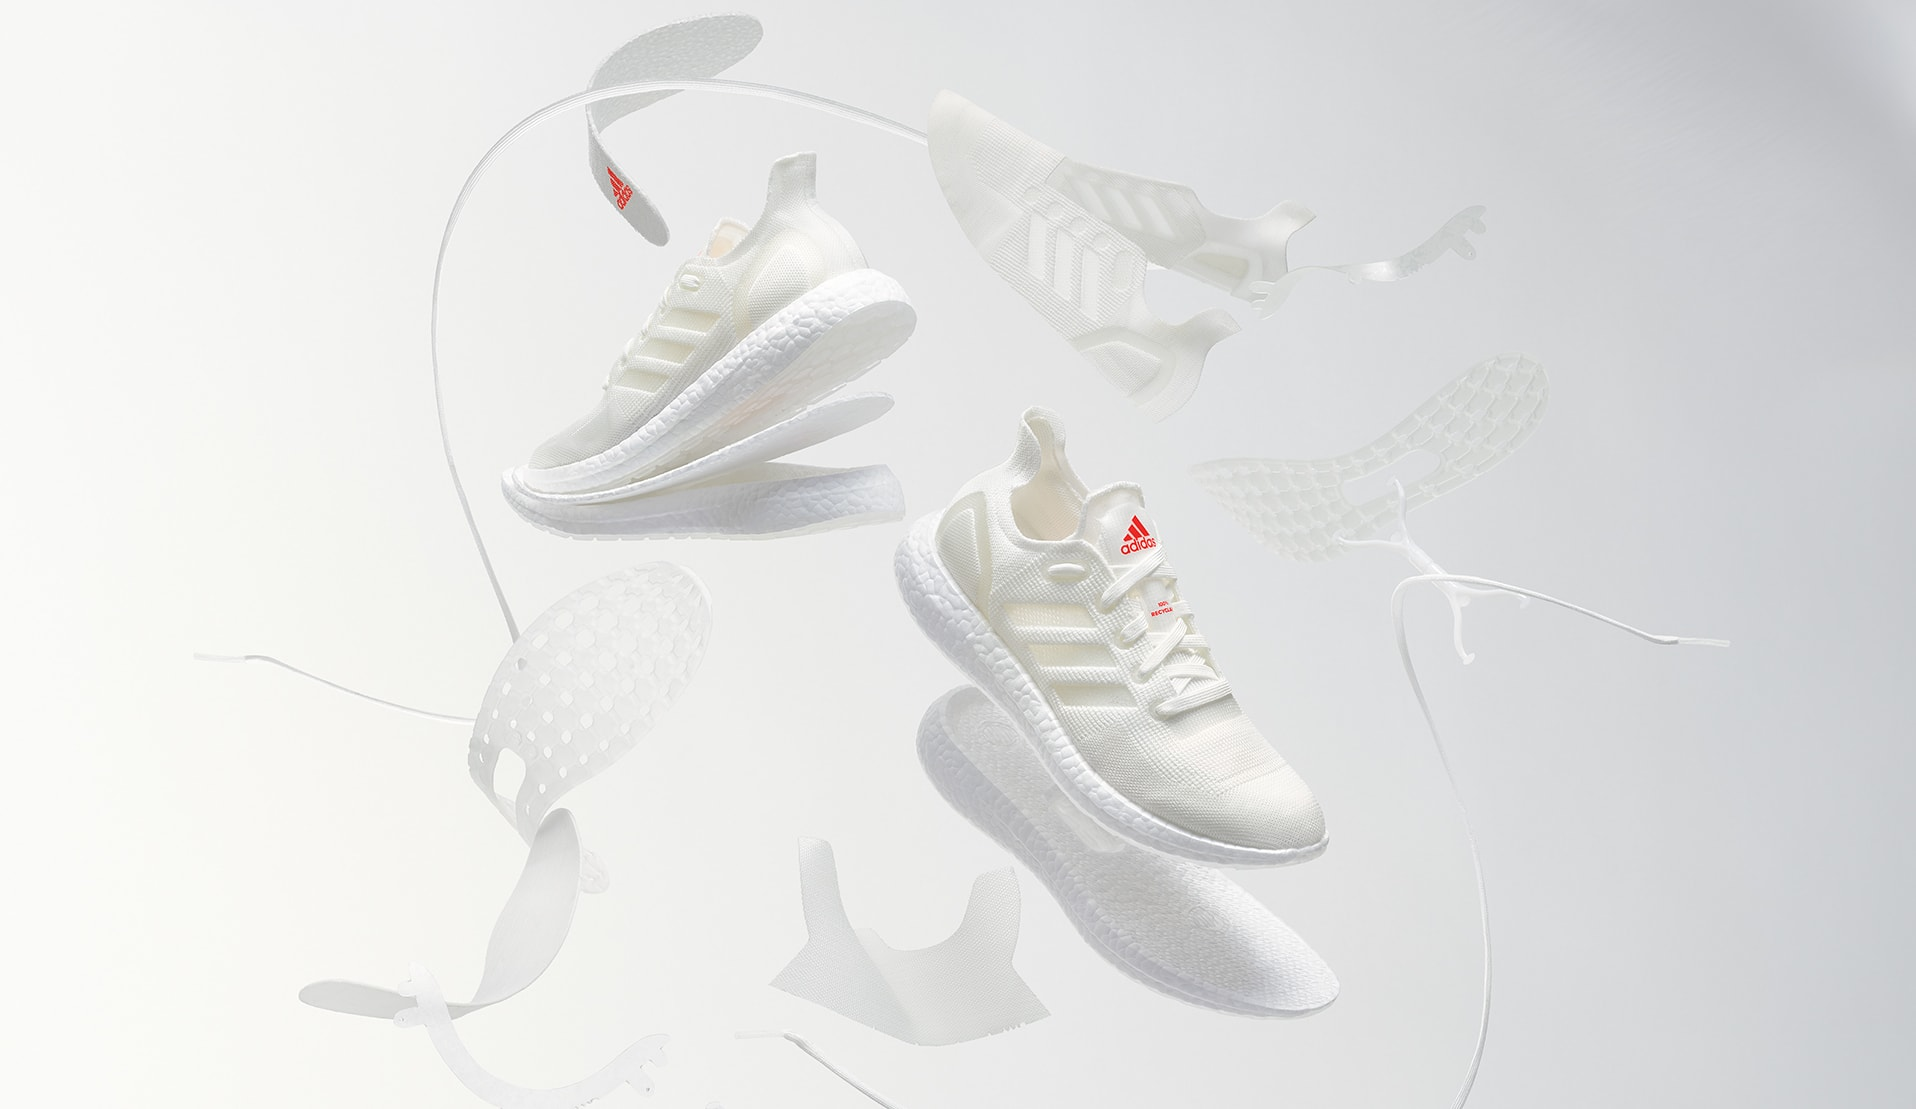 The fully recyclable running shoe